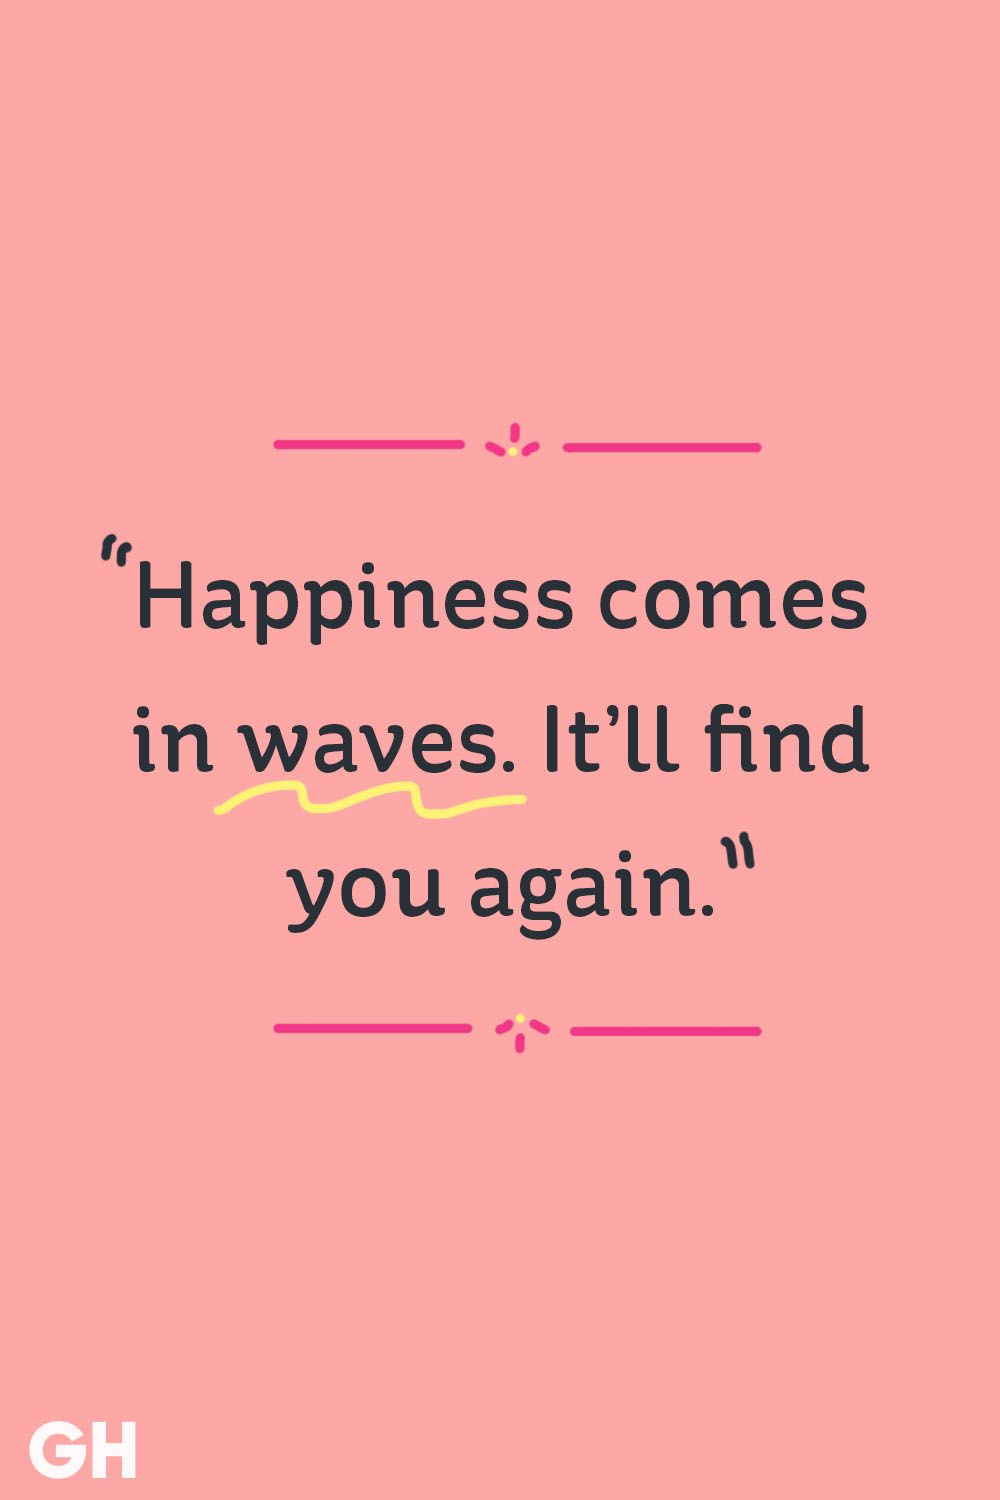 c3508c345f5 22 Happy Quotes - Best Quotes About Happiness and Joy